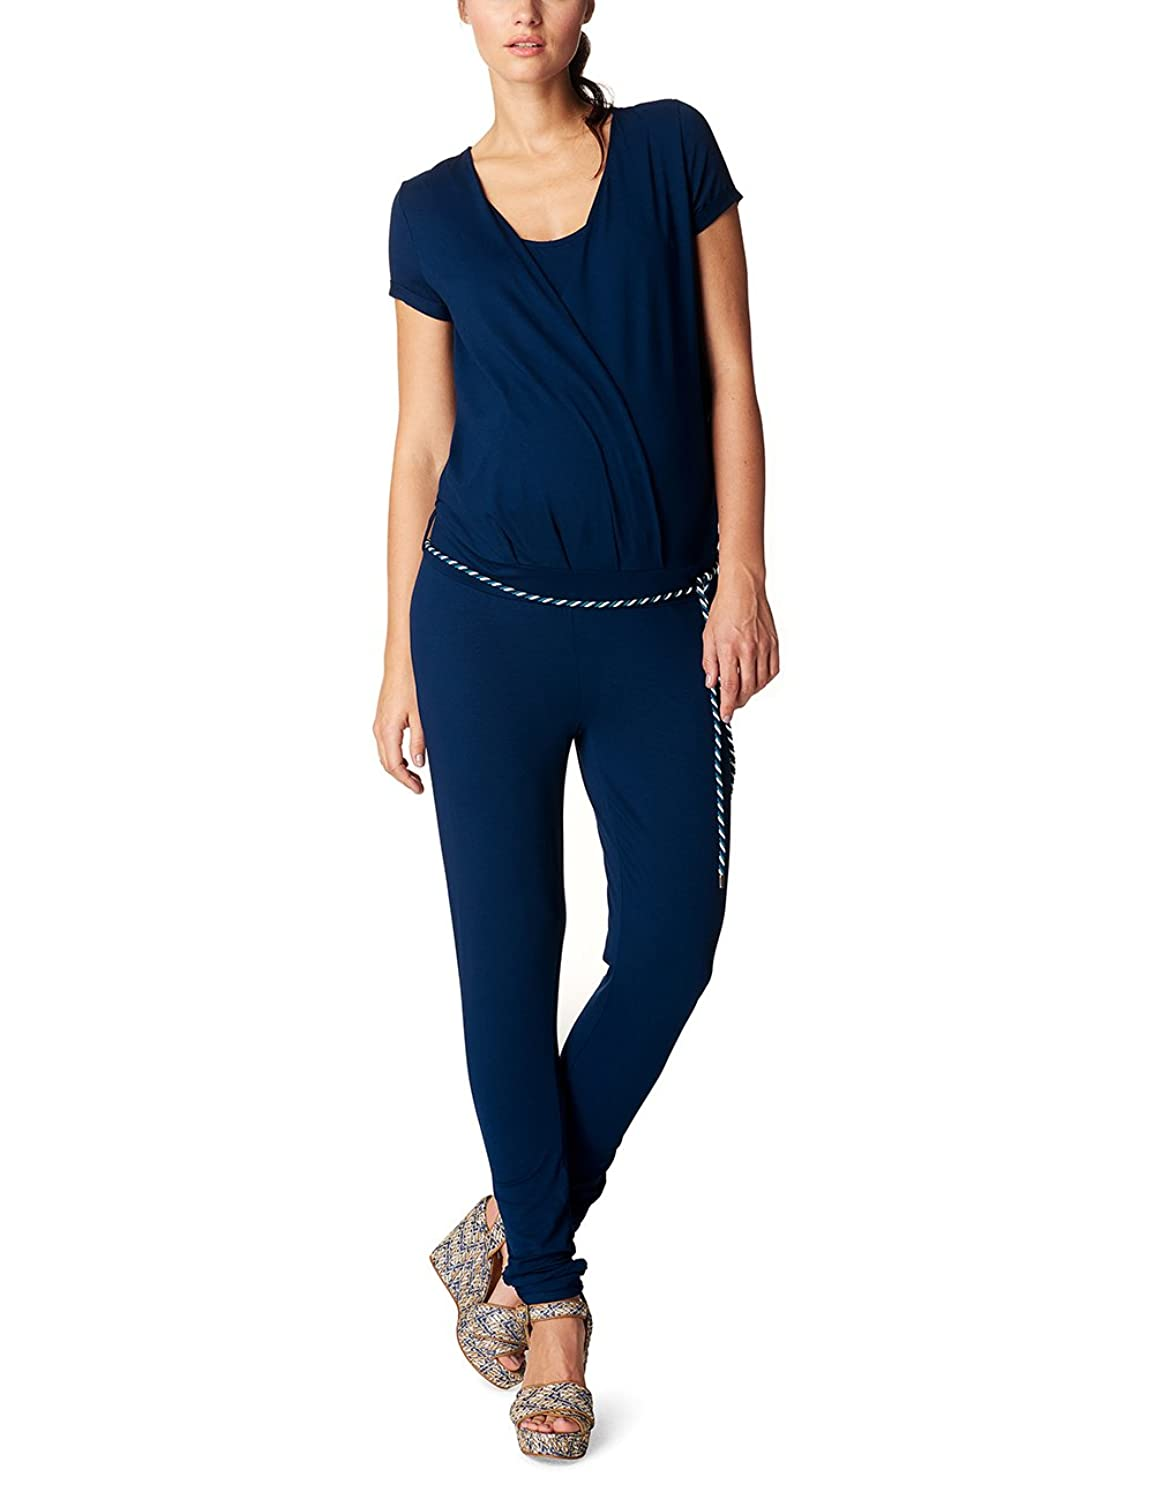 Noppies Damen Umstandsoverall Jumpsuit Ss Chloe 70212